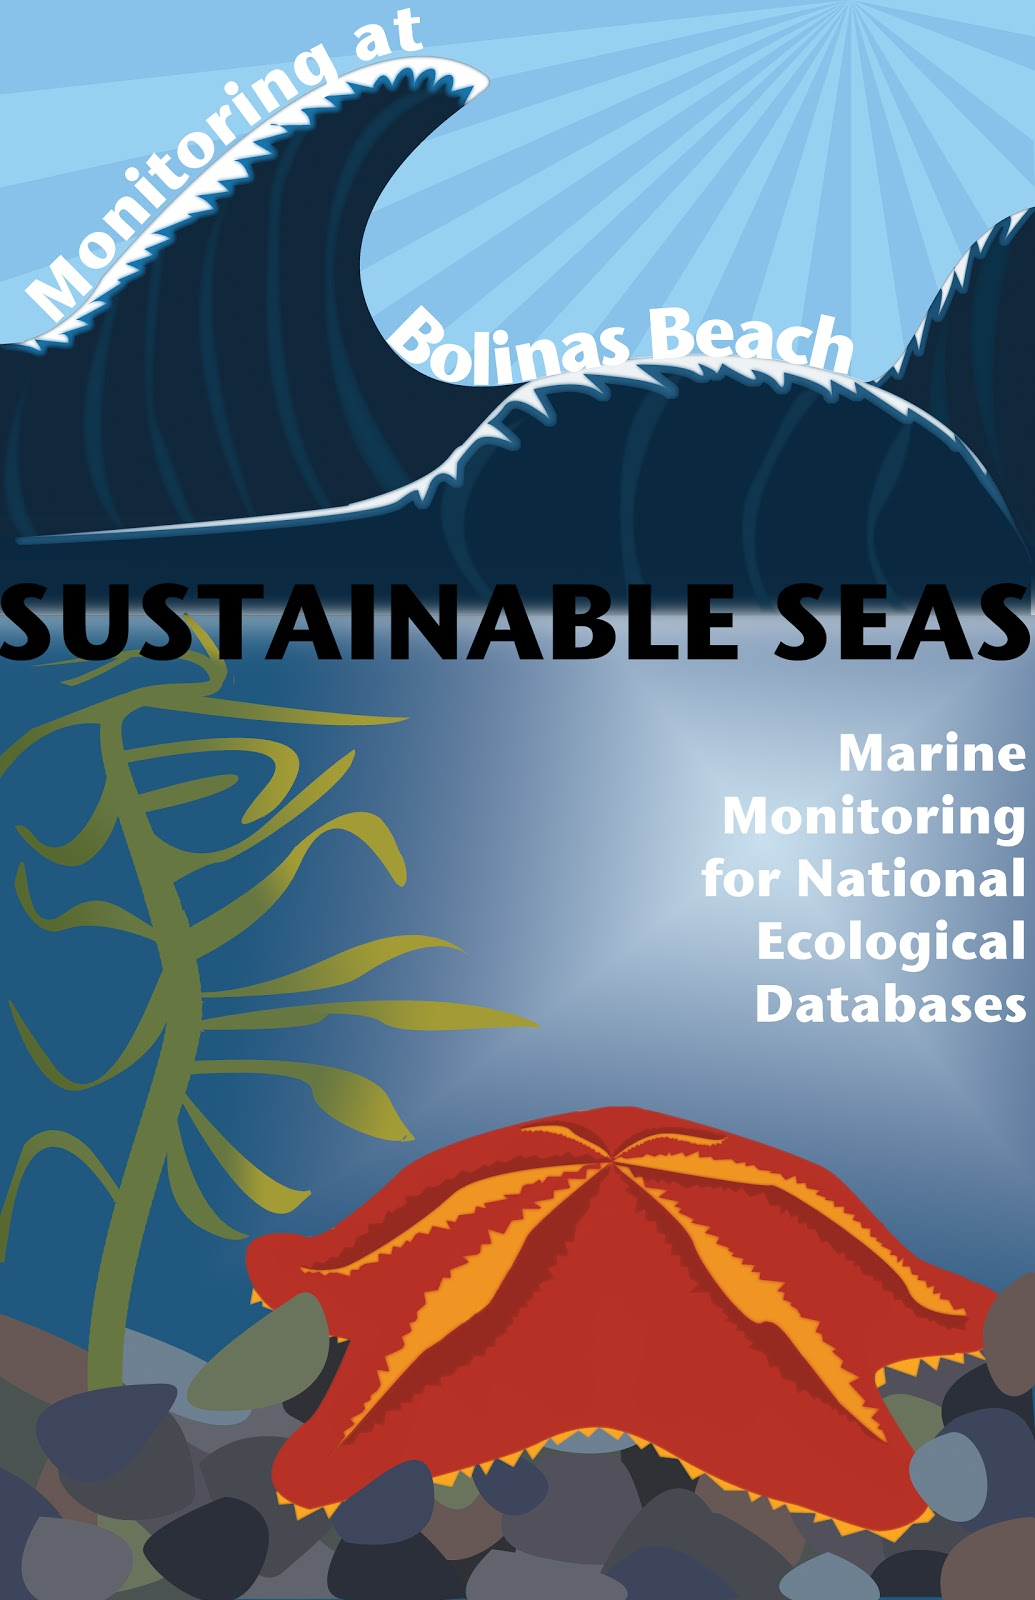 In this work, I created a poster for a club at Branson; I chose sustainable seas, a club which volunteers time to record data of marine life at beaches in ...